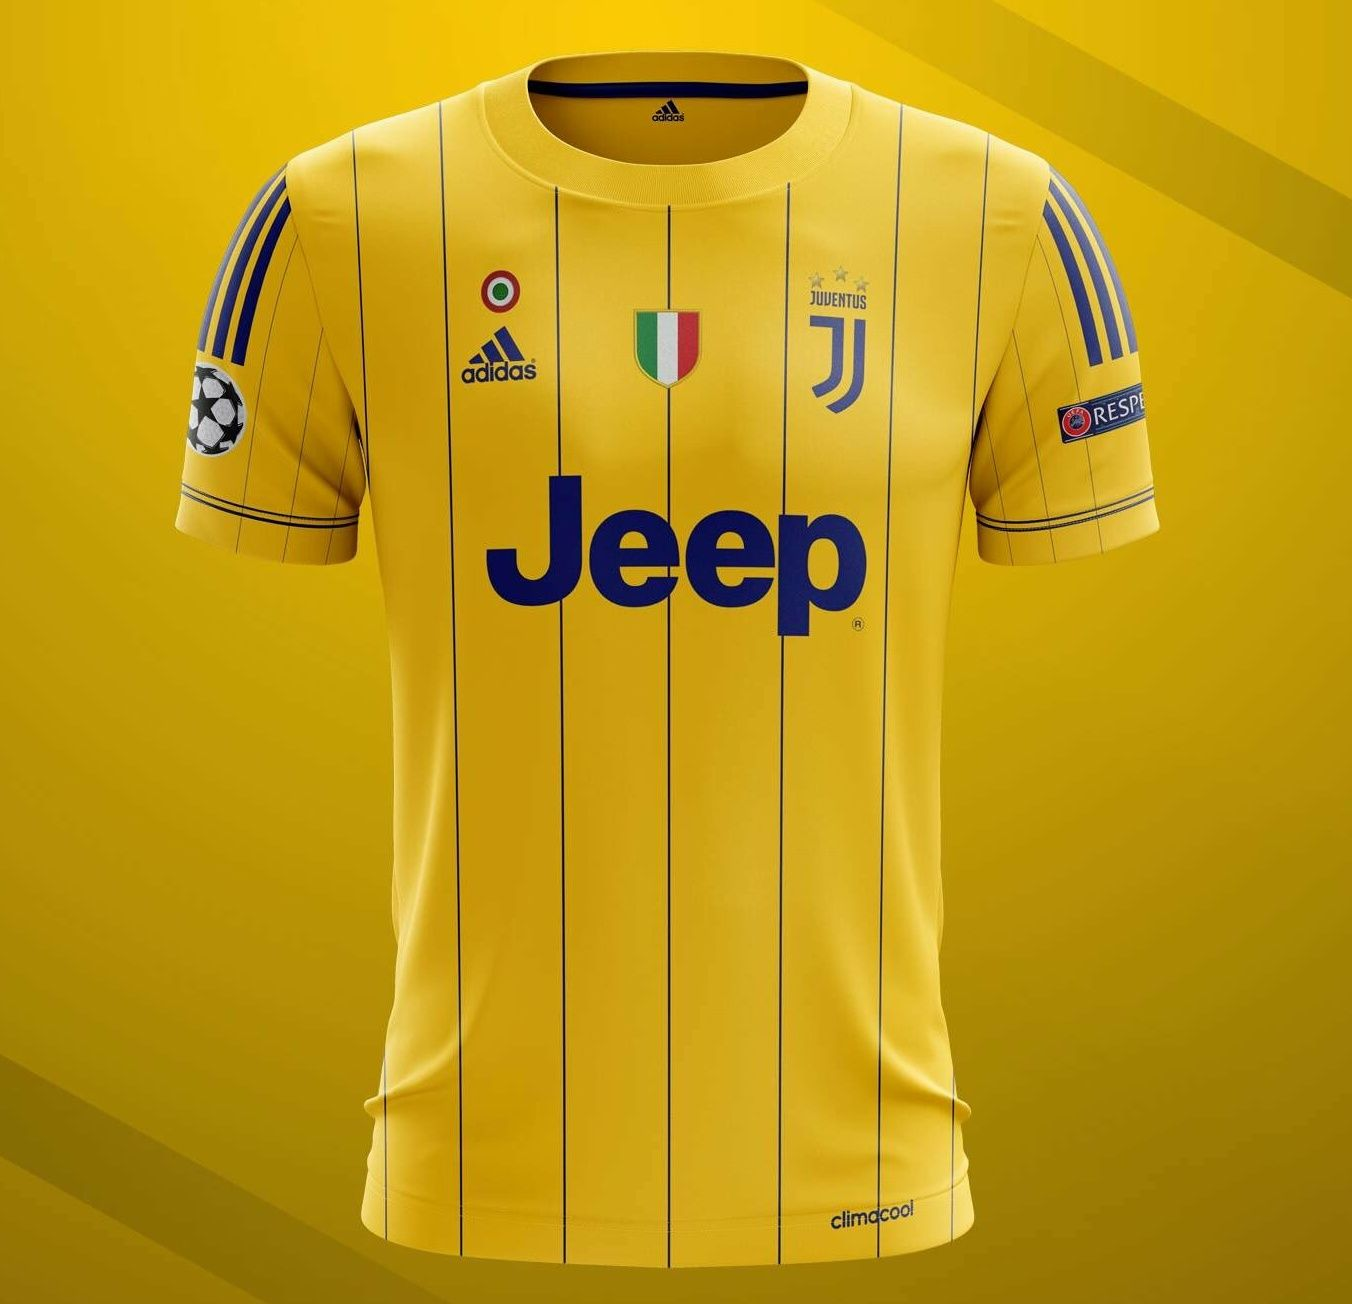 Image result for juventus new kit 2017/18